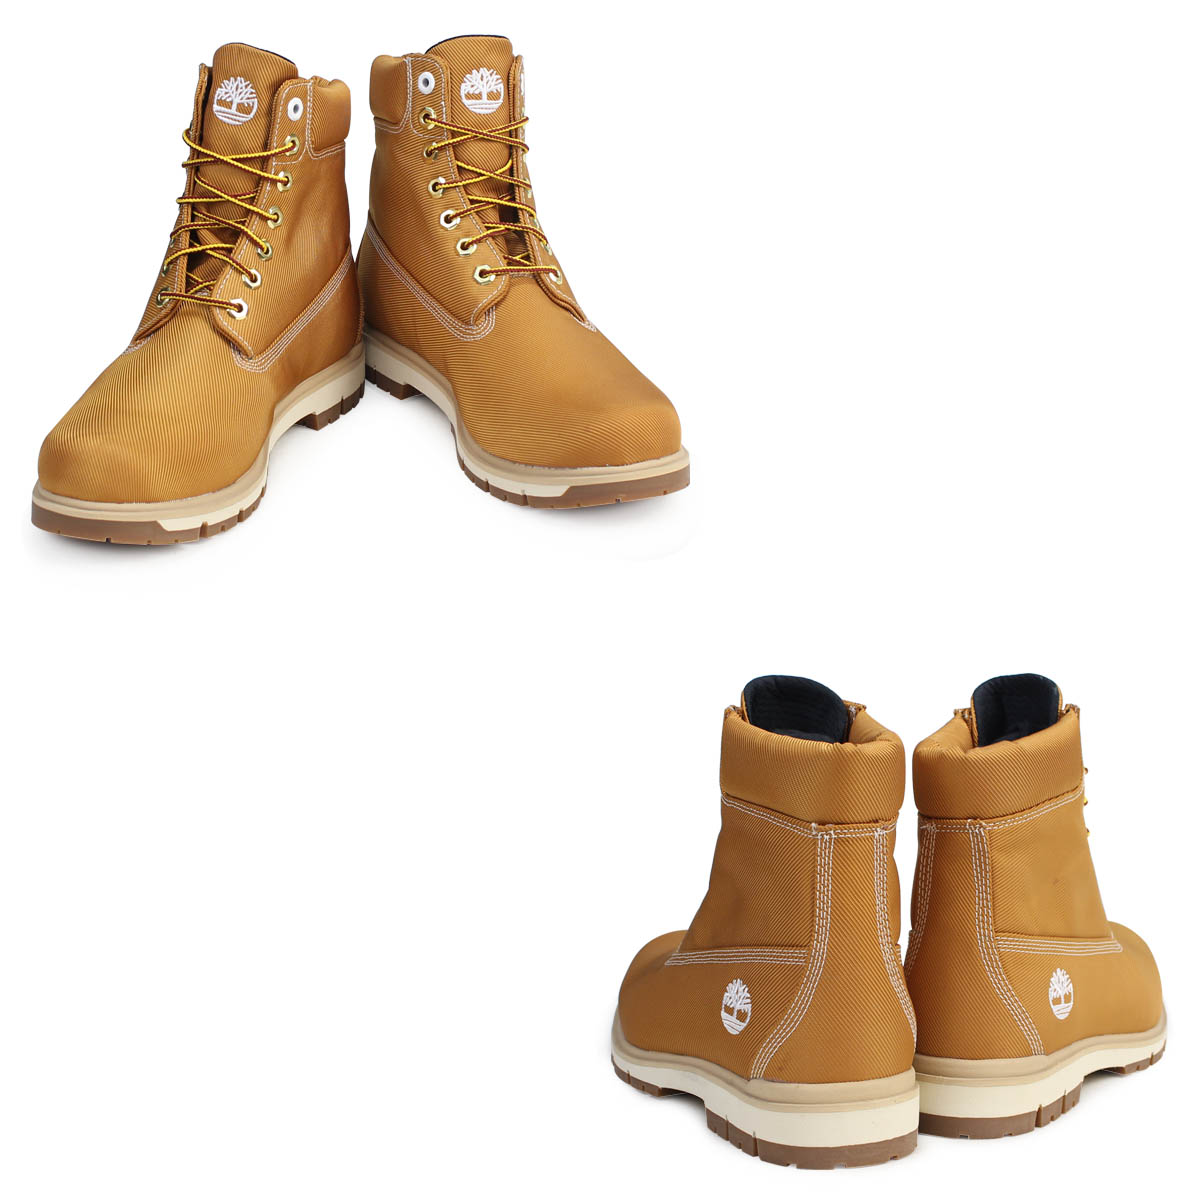 8d66461410f Timberland 6 inches men's Timberland boots 6INCHI RADFORD CANVAS BOOTS  A1M8X W Wise waterproofing beige [178]